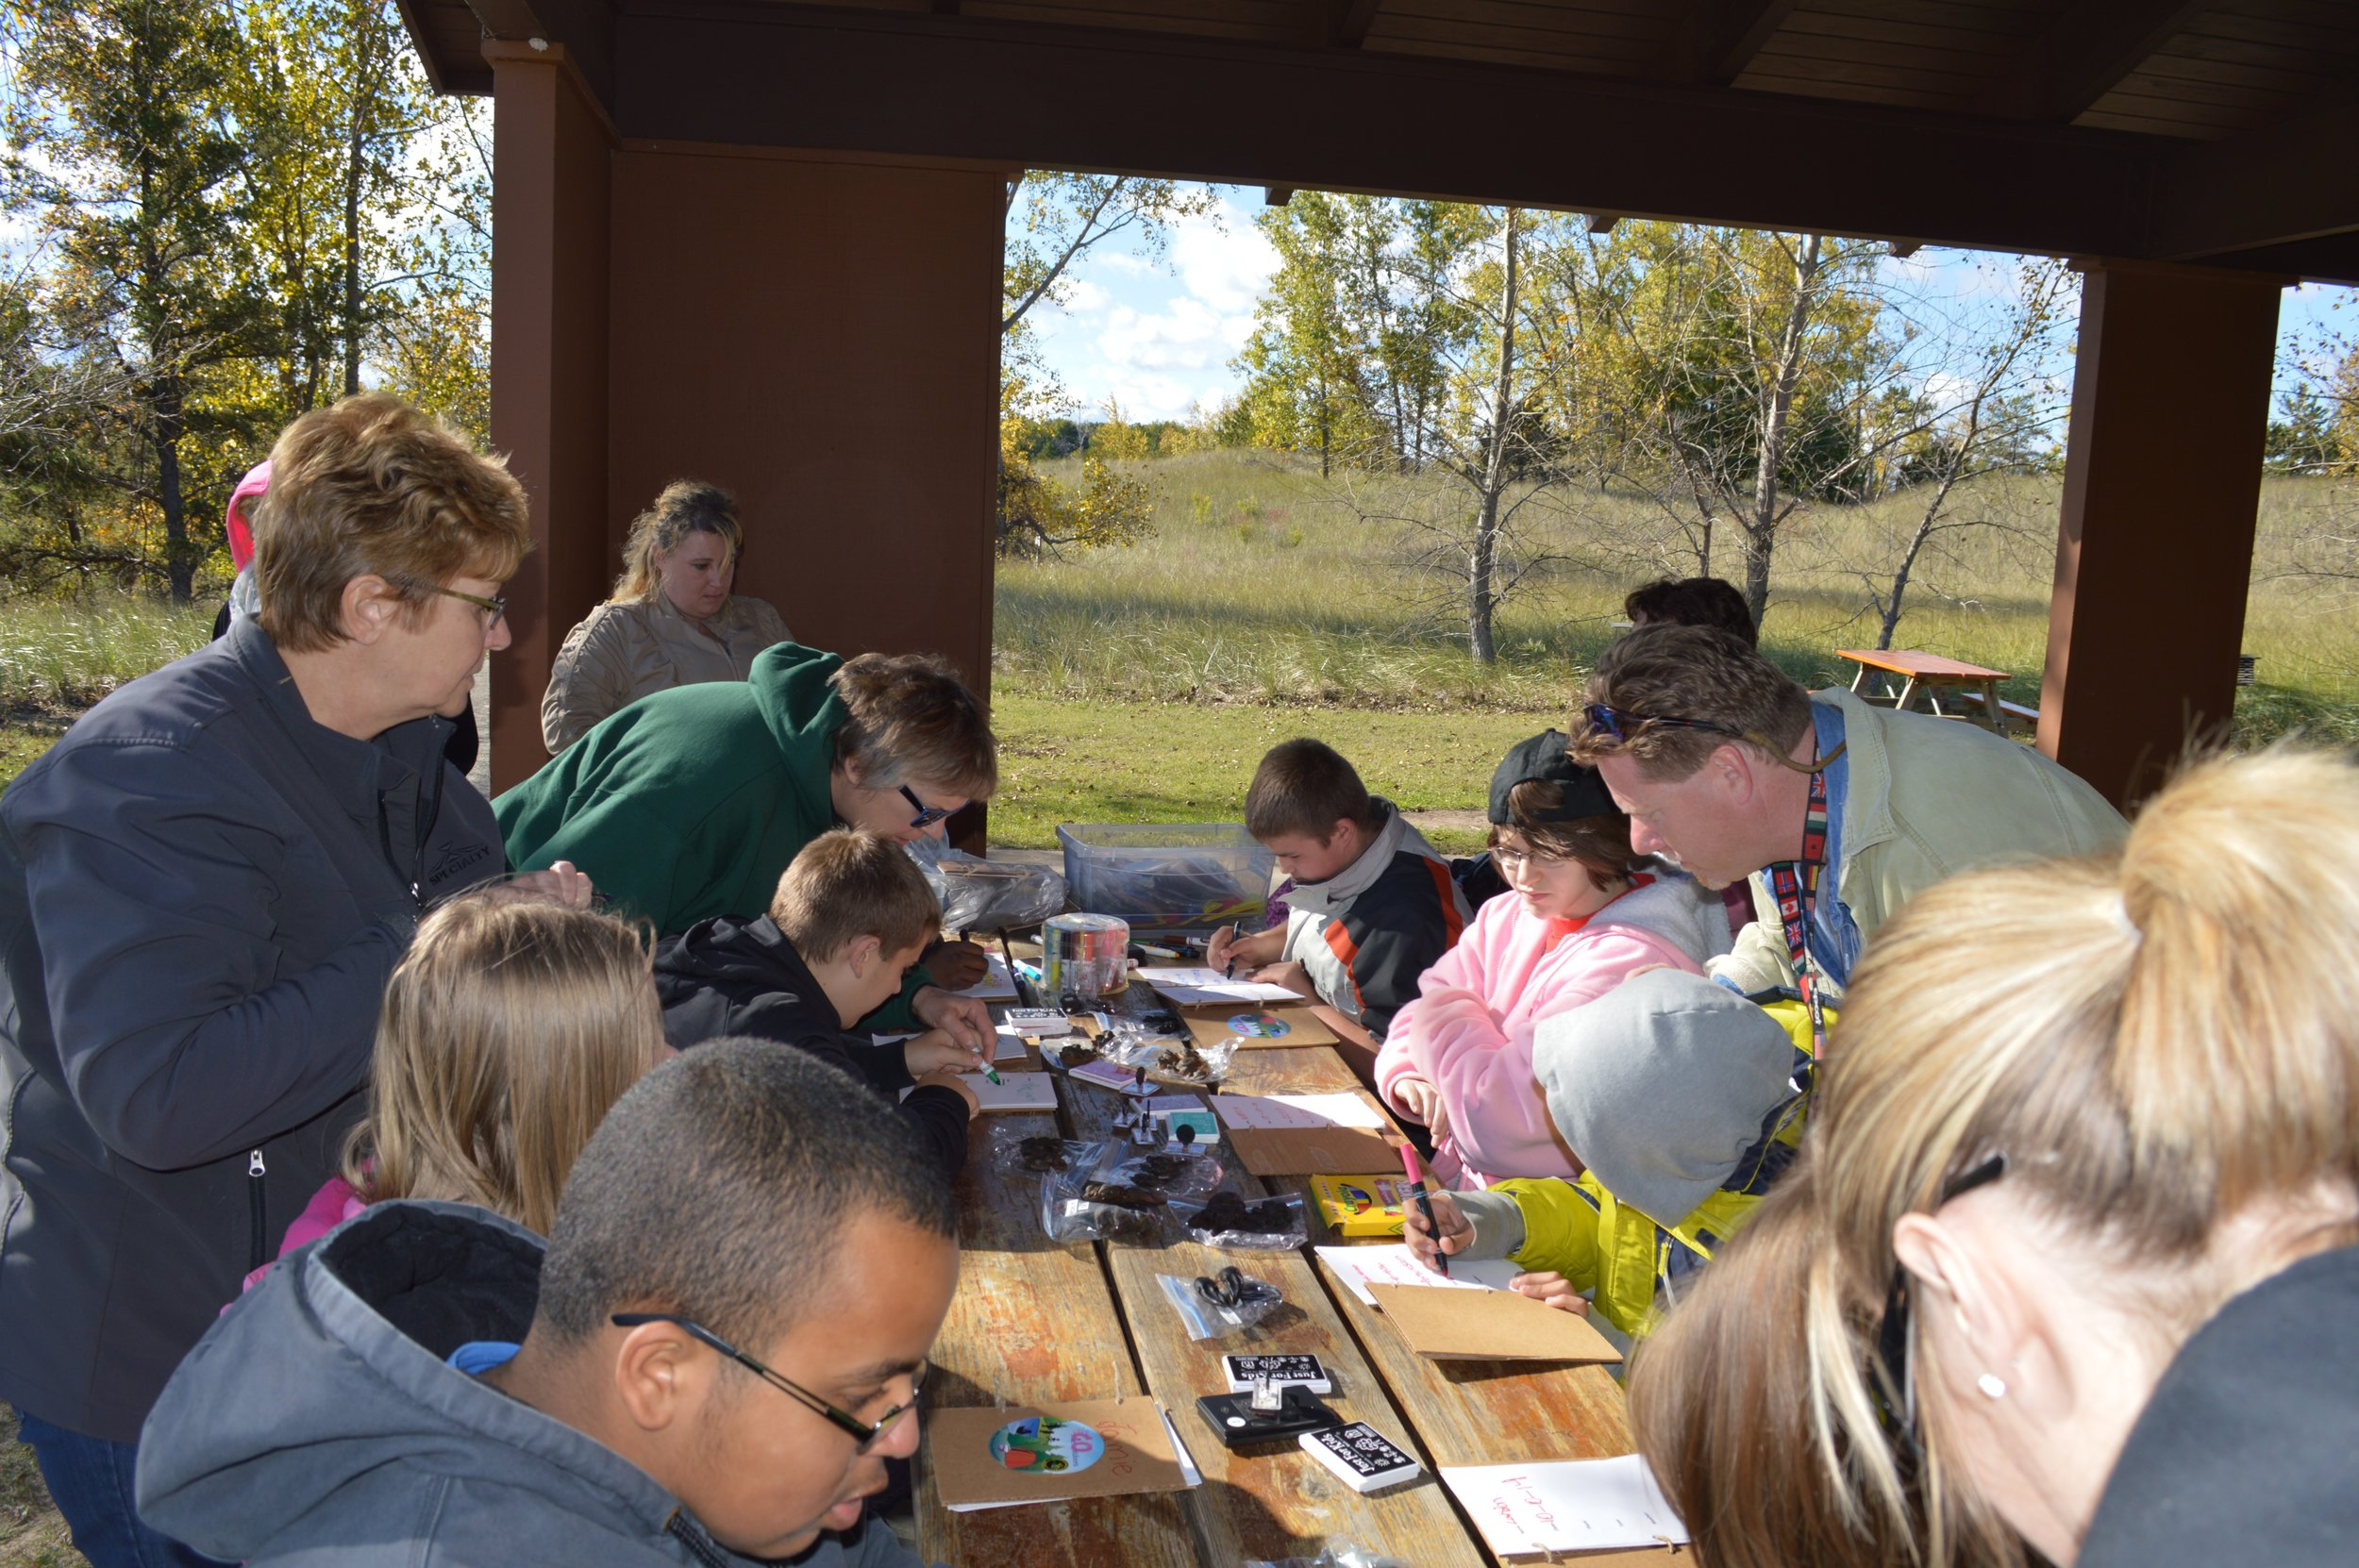 Students from the Huron Learning Center participate in a hands-on learning field trip to the State Park.